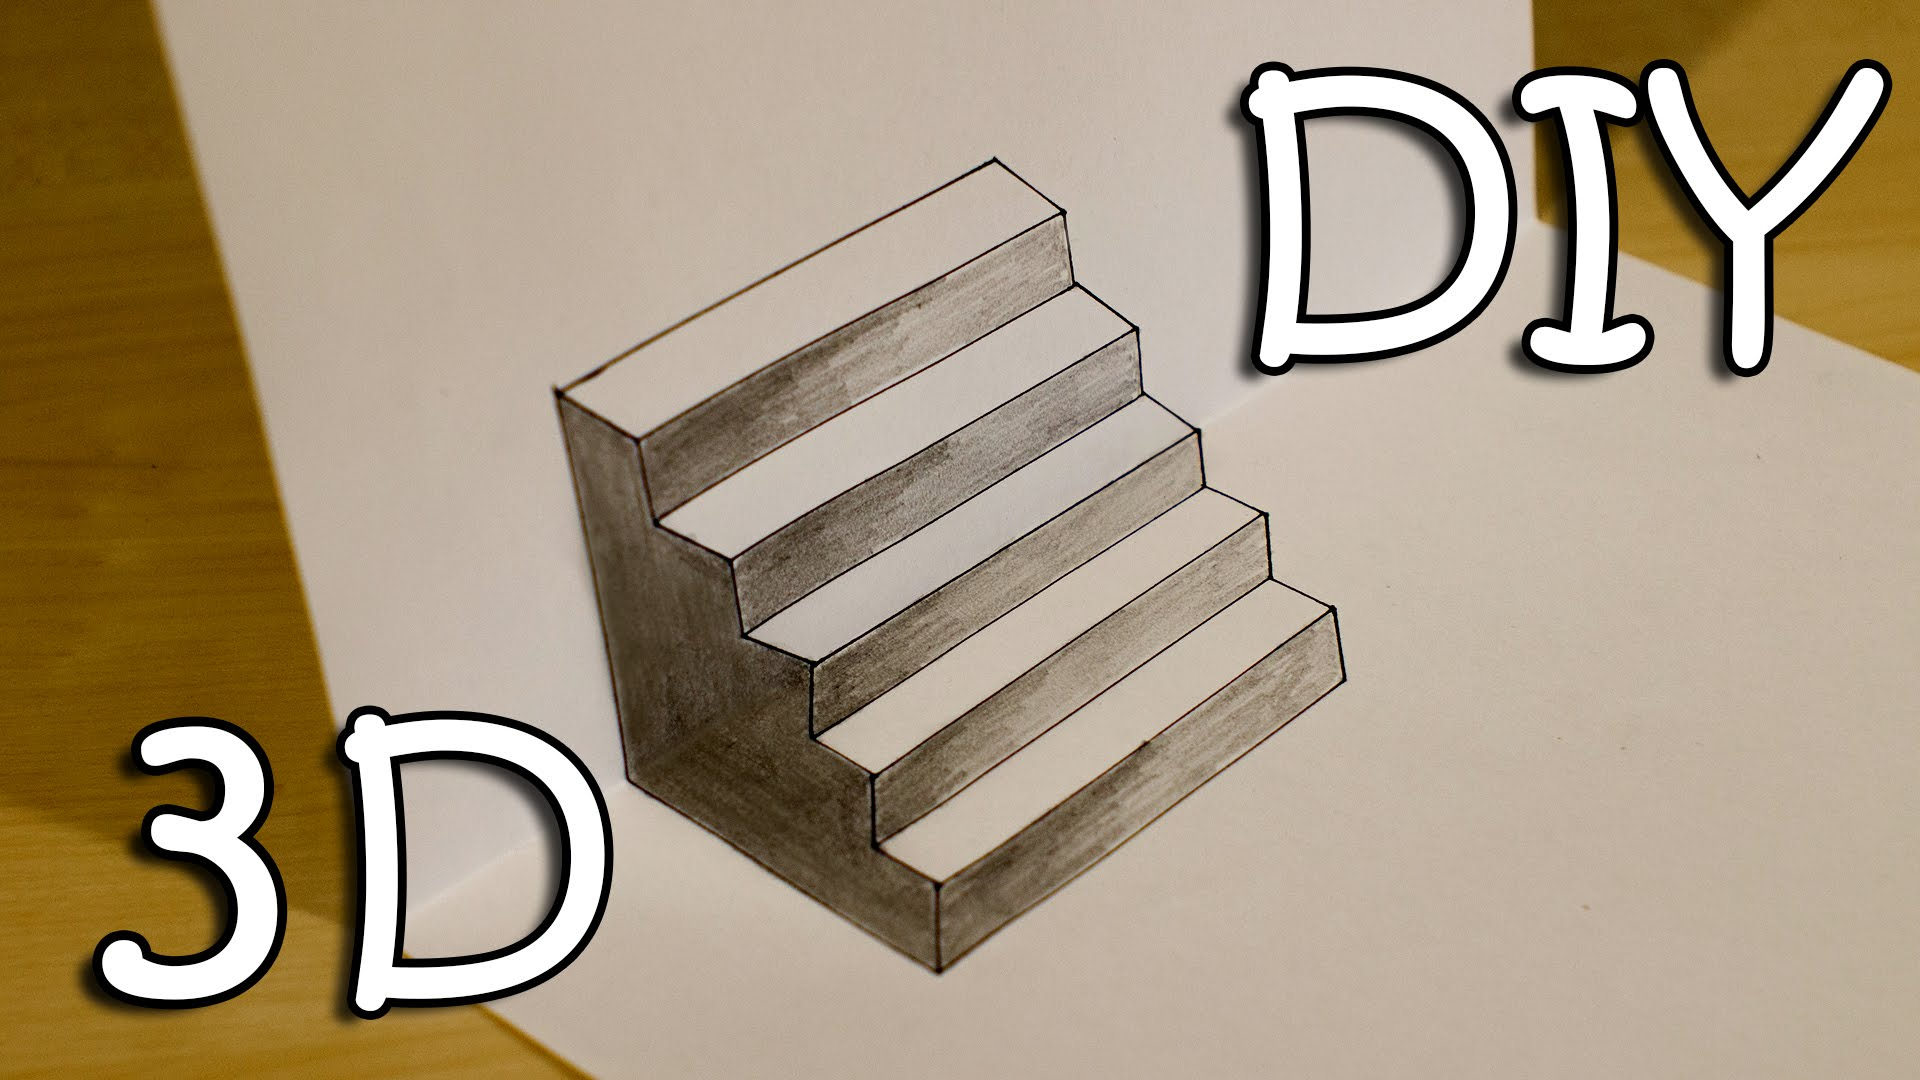 Drawn stairs simple Optical YouTube 3D Optical Draw